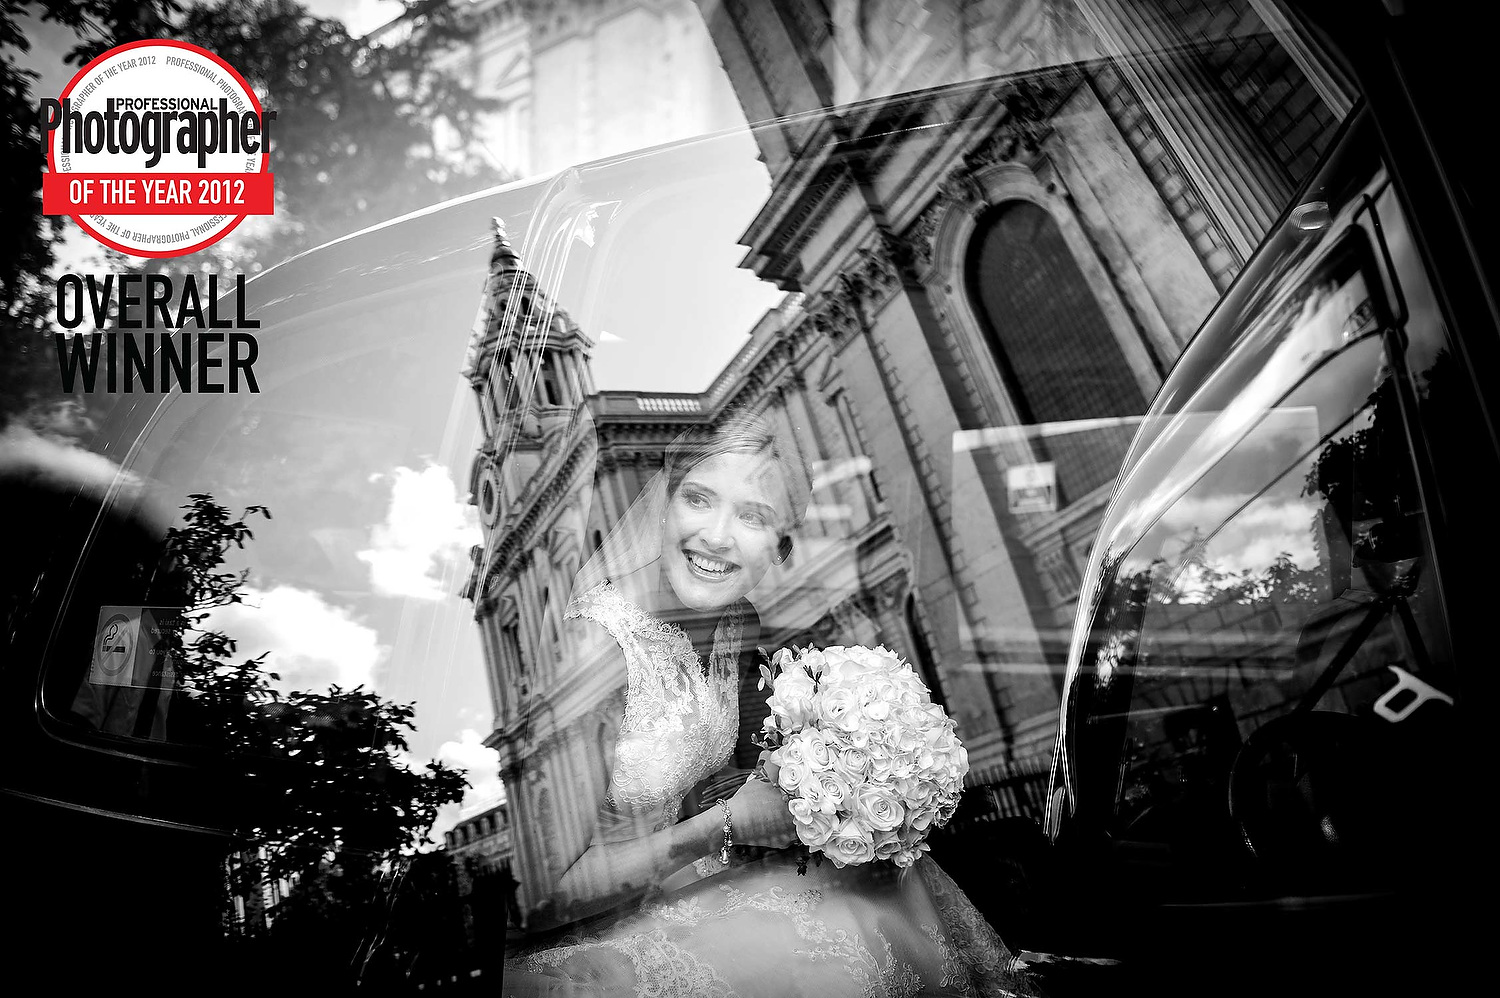 Photographer of the year award for a London wedding photograph